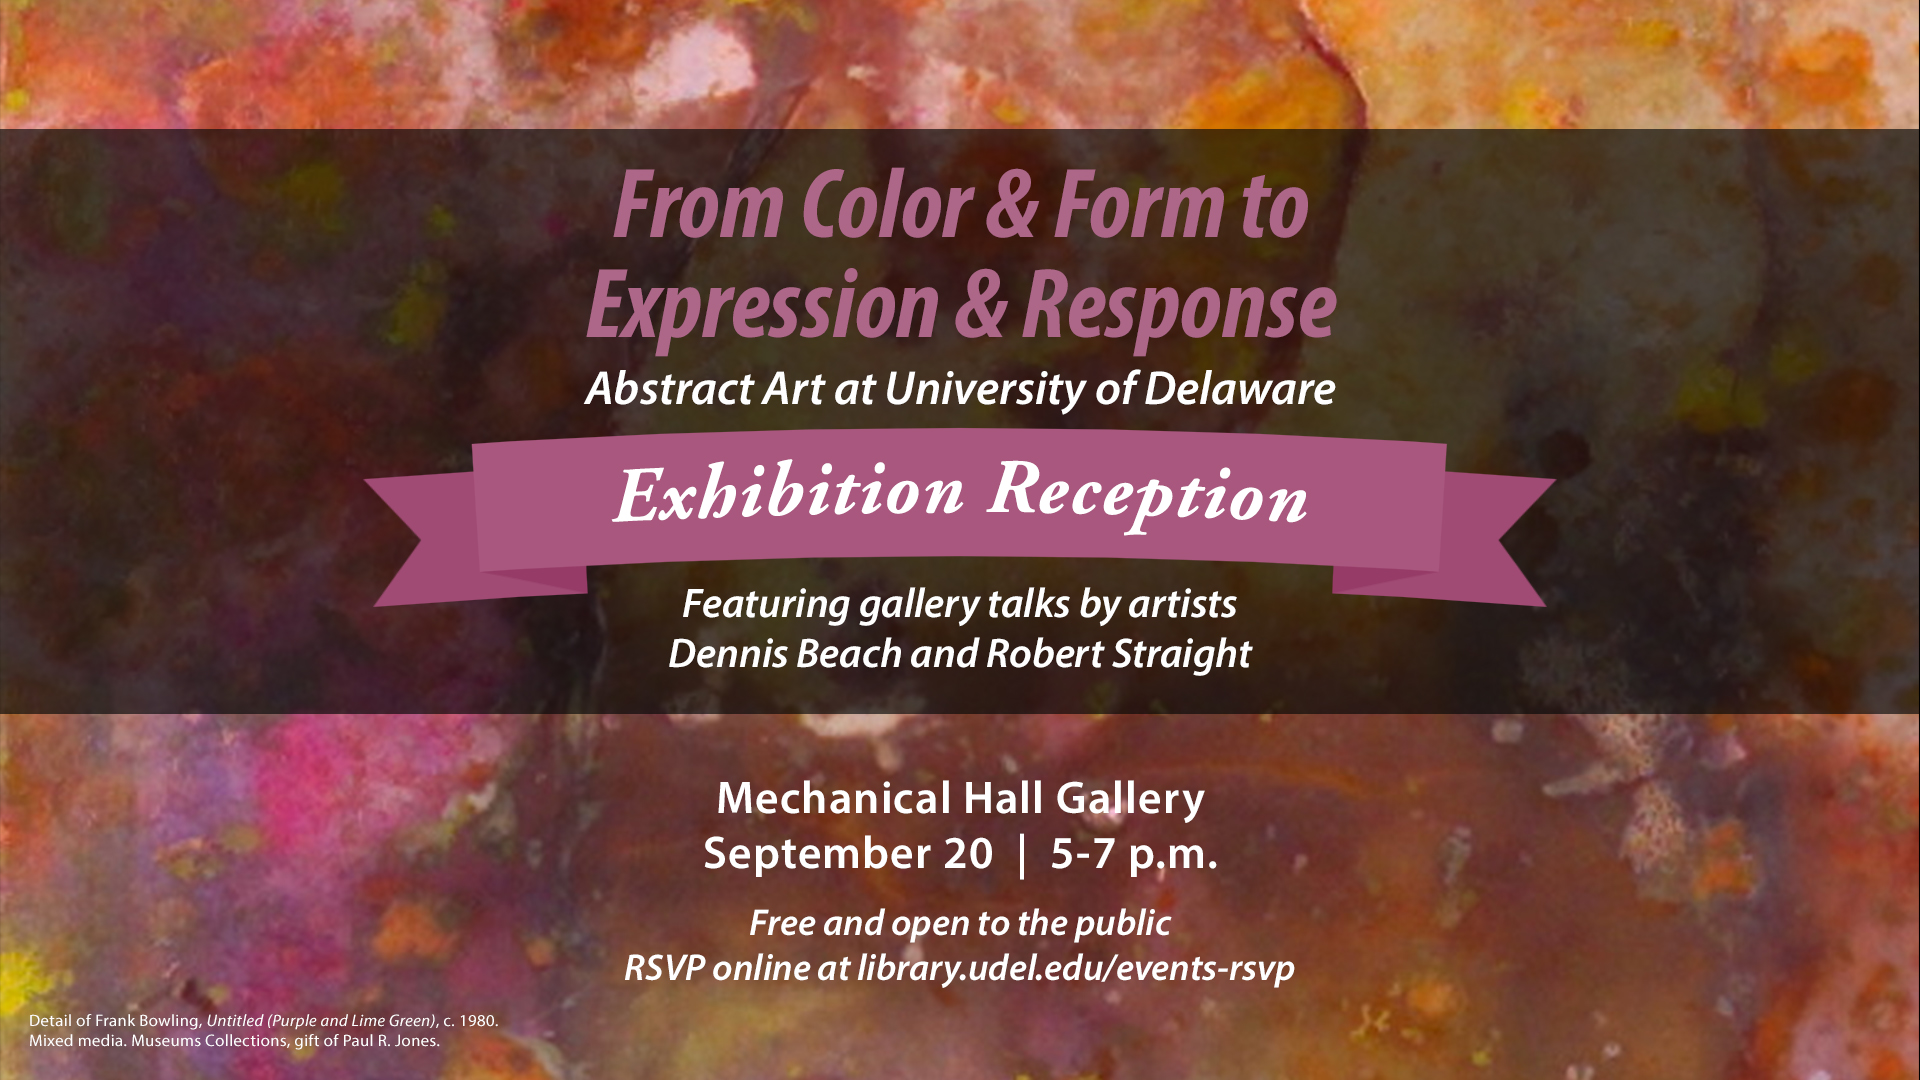 Reception for From Color and Form to Expression and Response: Abstract Art at University of Delaware